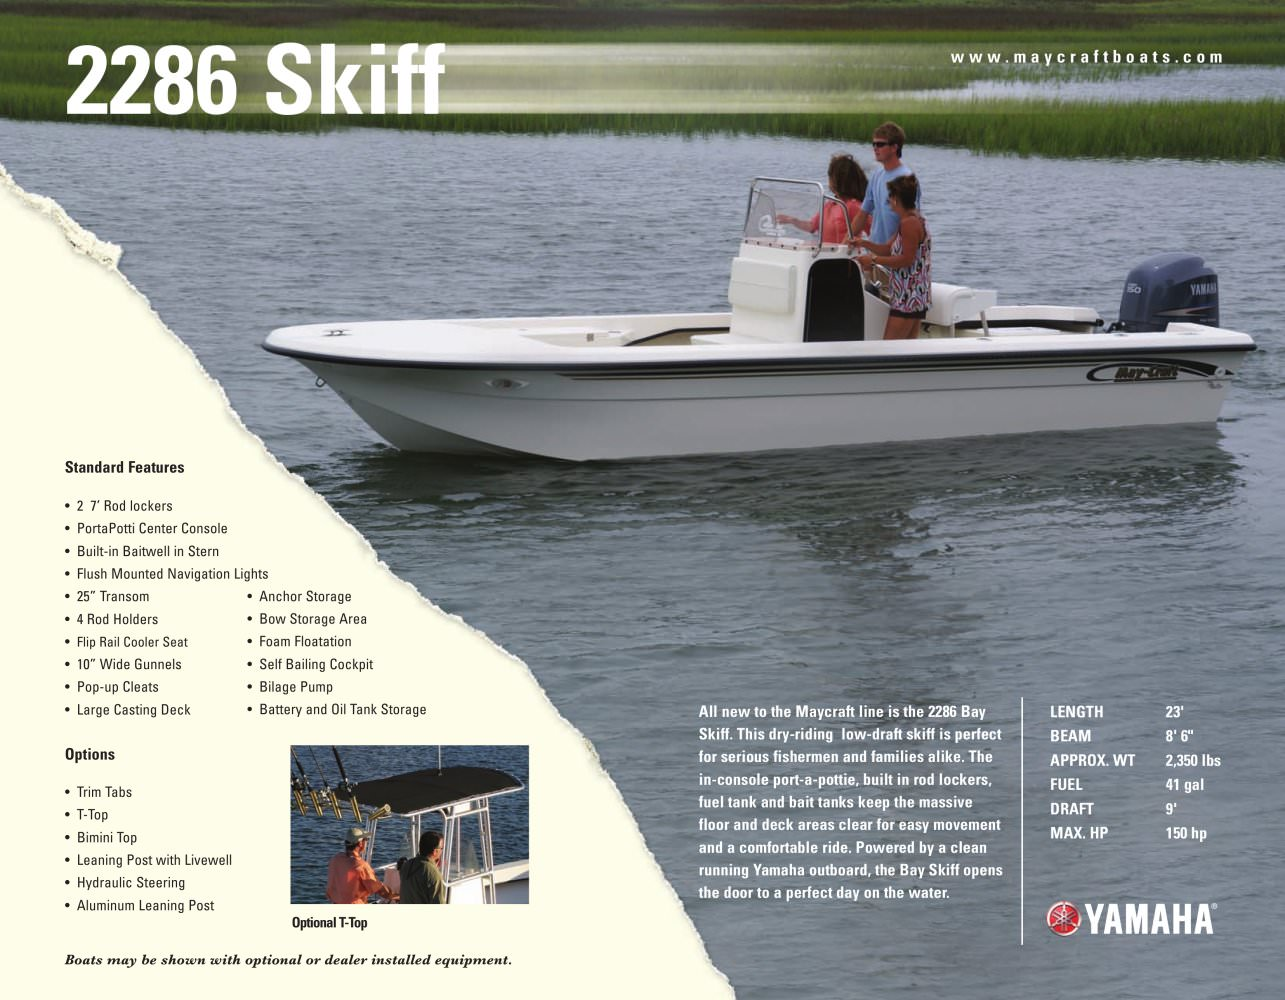 2286 skiff - 1 / 1 Pages